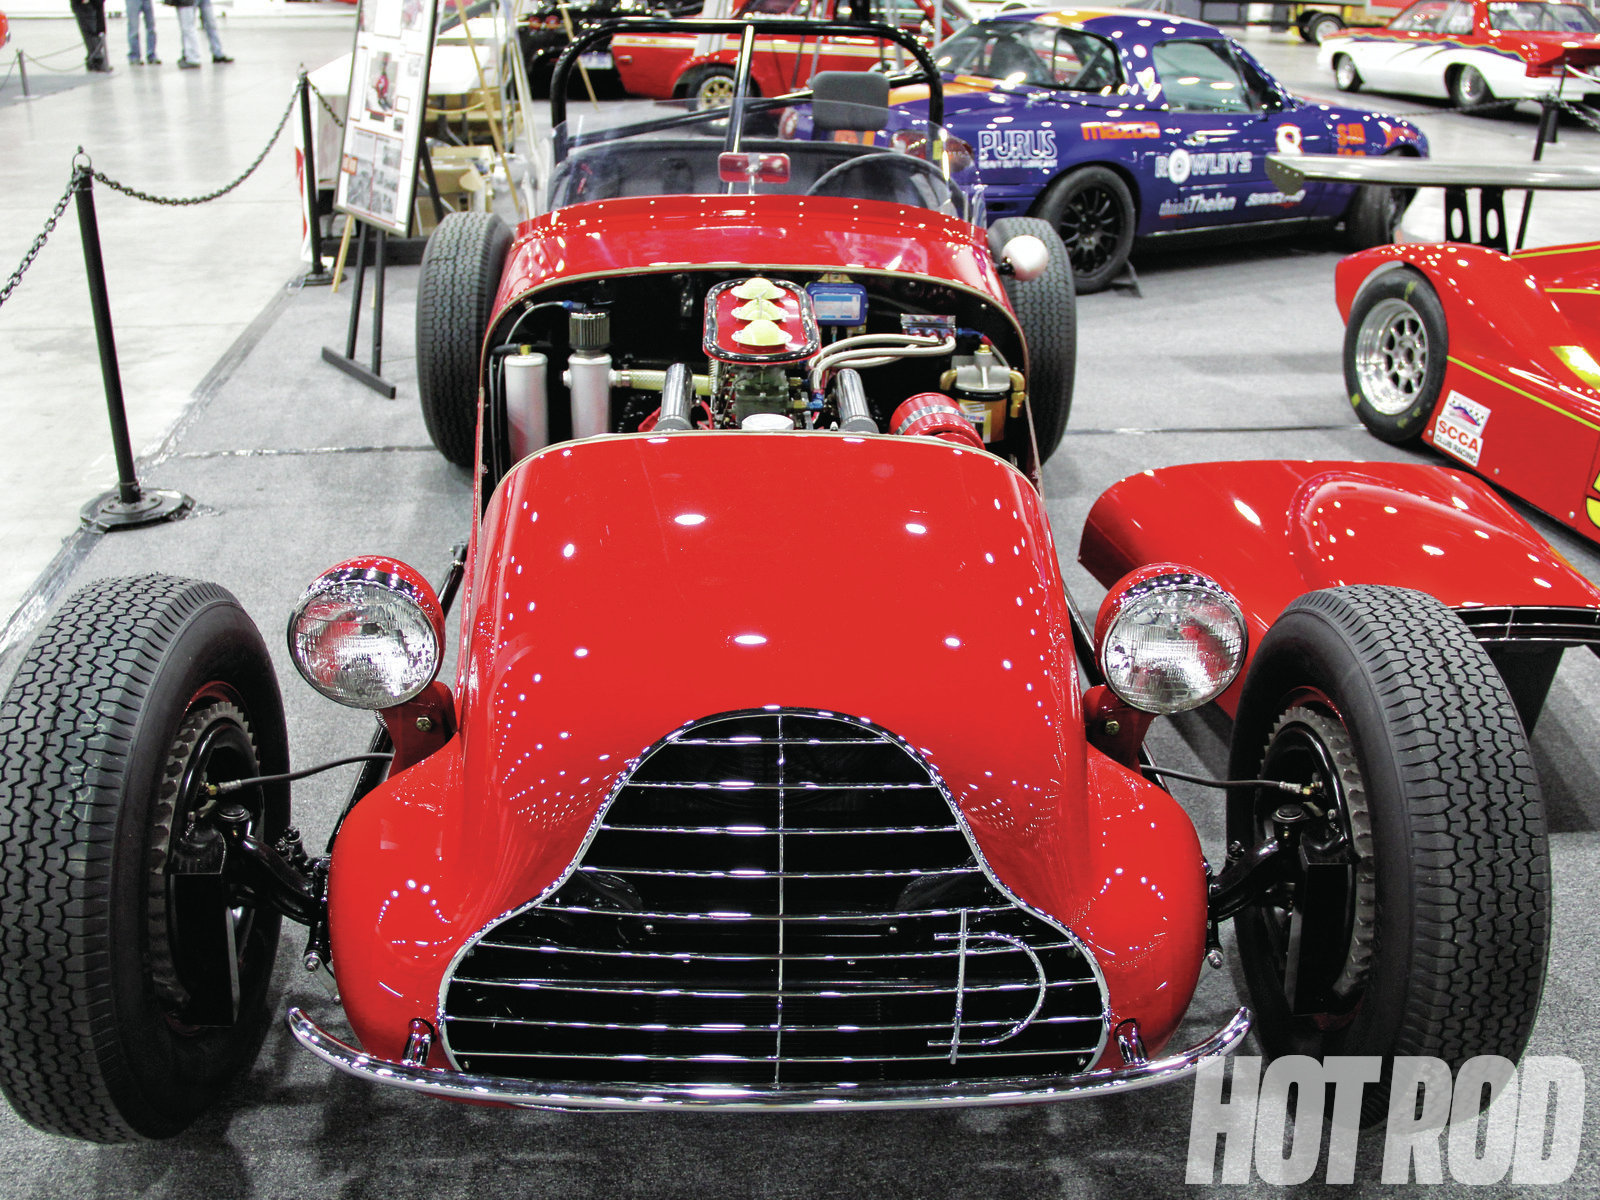 The Autorama has more than just show cars. In fact, at least a third of the cars in the building were race cars, some of them quite unusual, like the Garrett Van Camp's Davis Special, a one-off hillclimb car built in the '50s with modified '40s Plymouth and Chevy sheetmetal on a '41 Ford chassis and powered by a '47 Ford flathead.